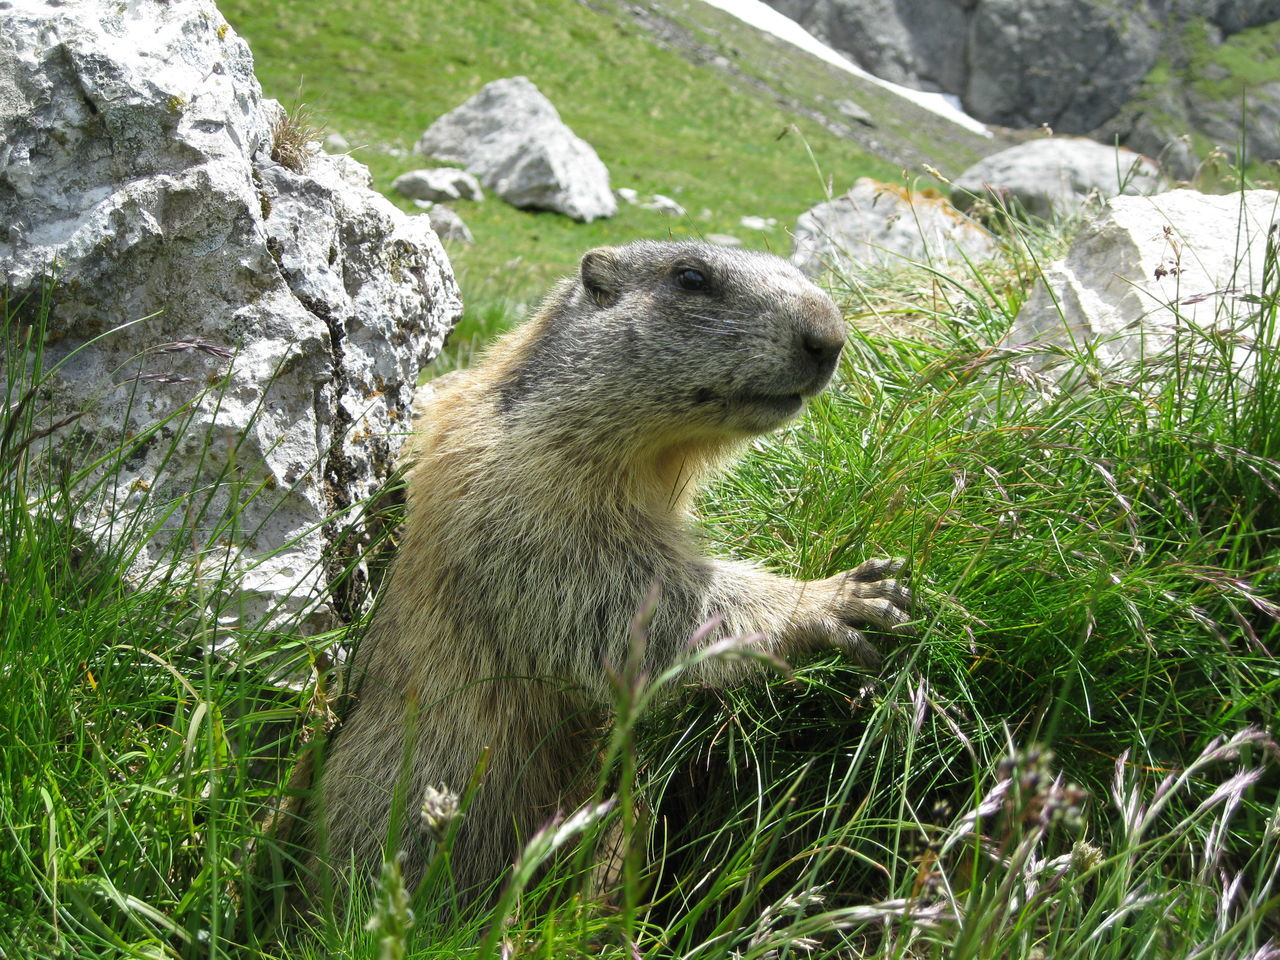 Close-Up Of Groundhog On Grassy Field